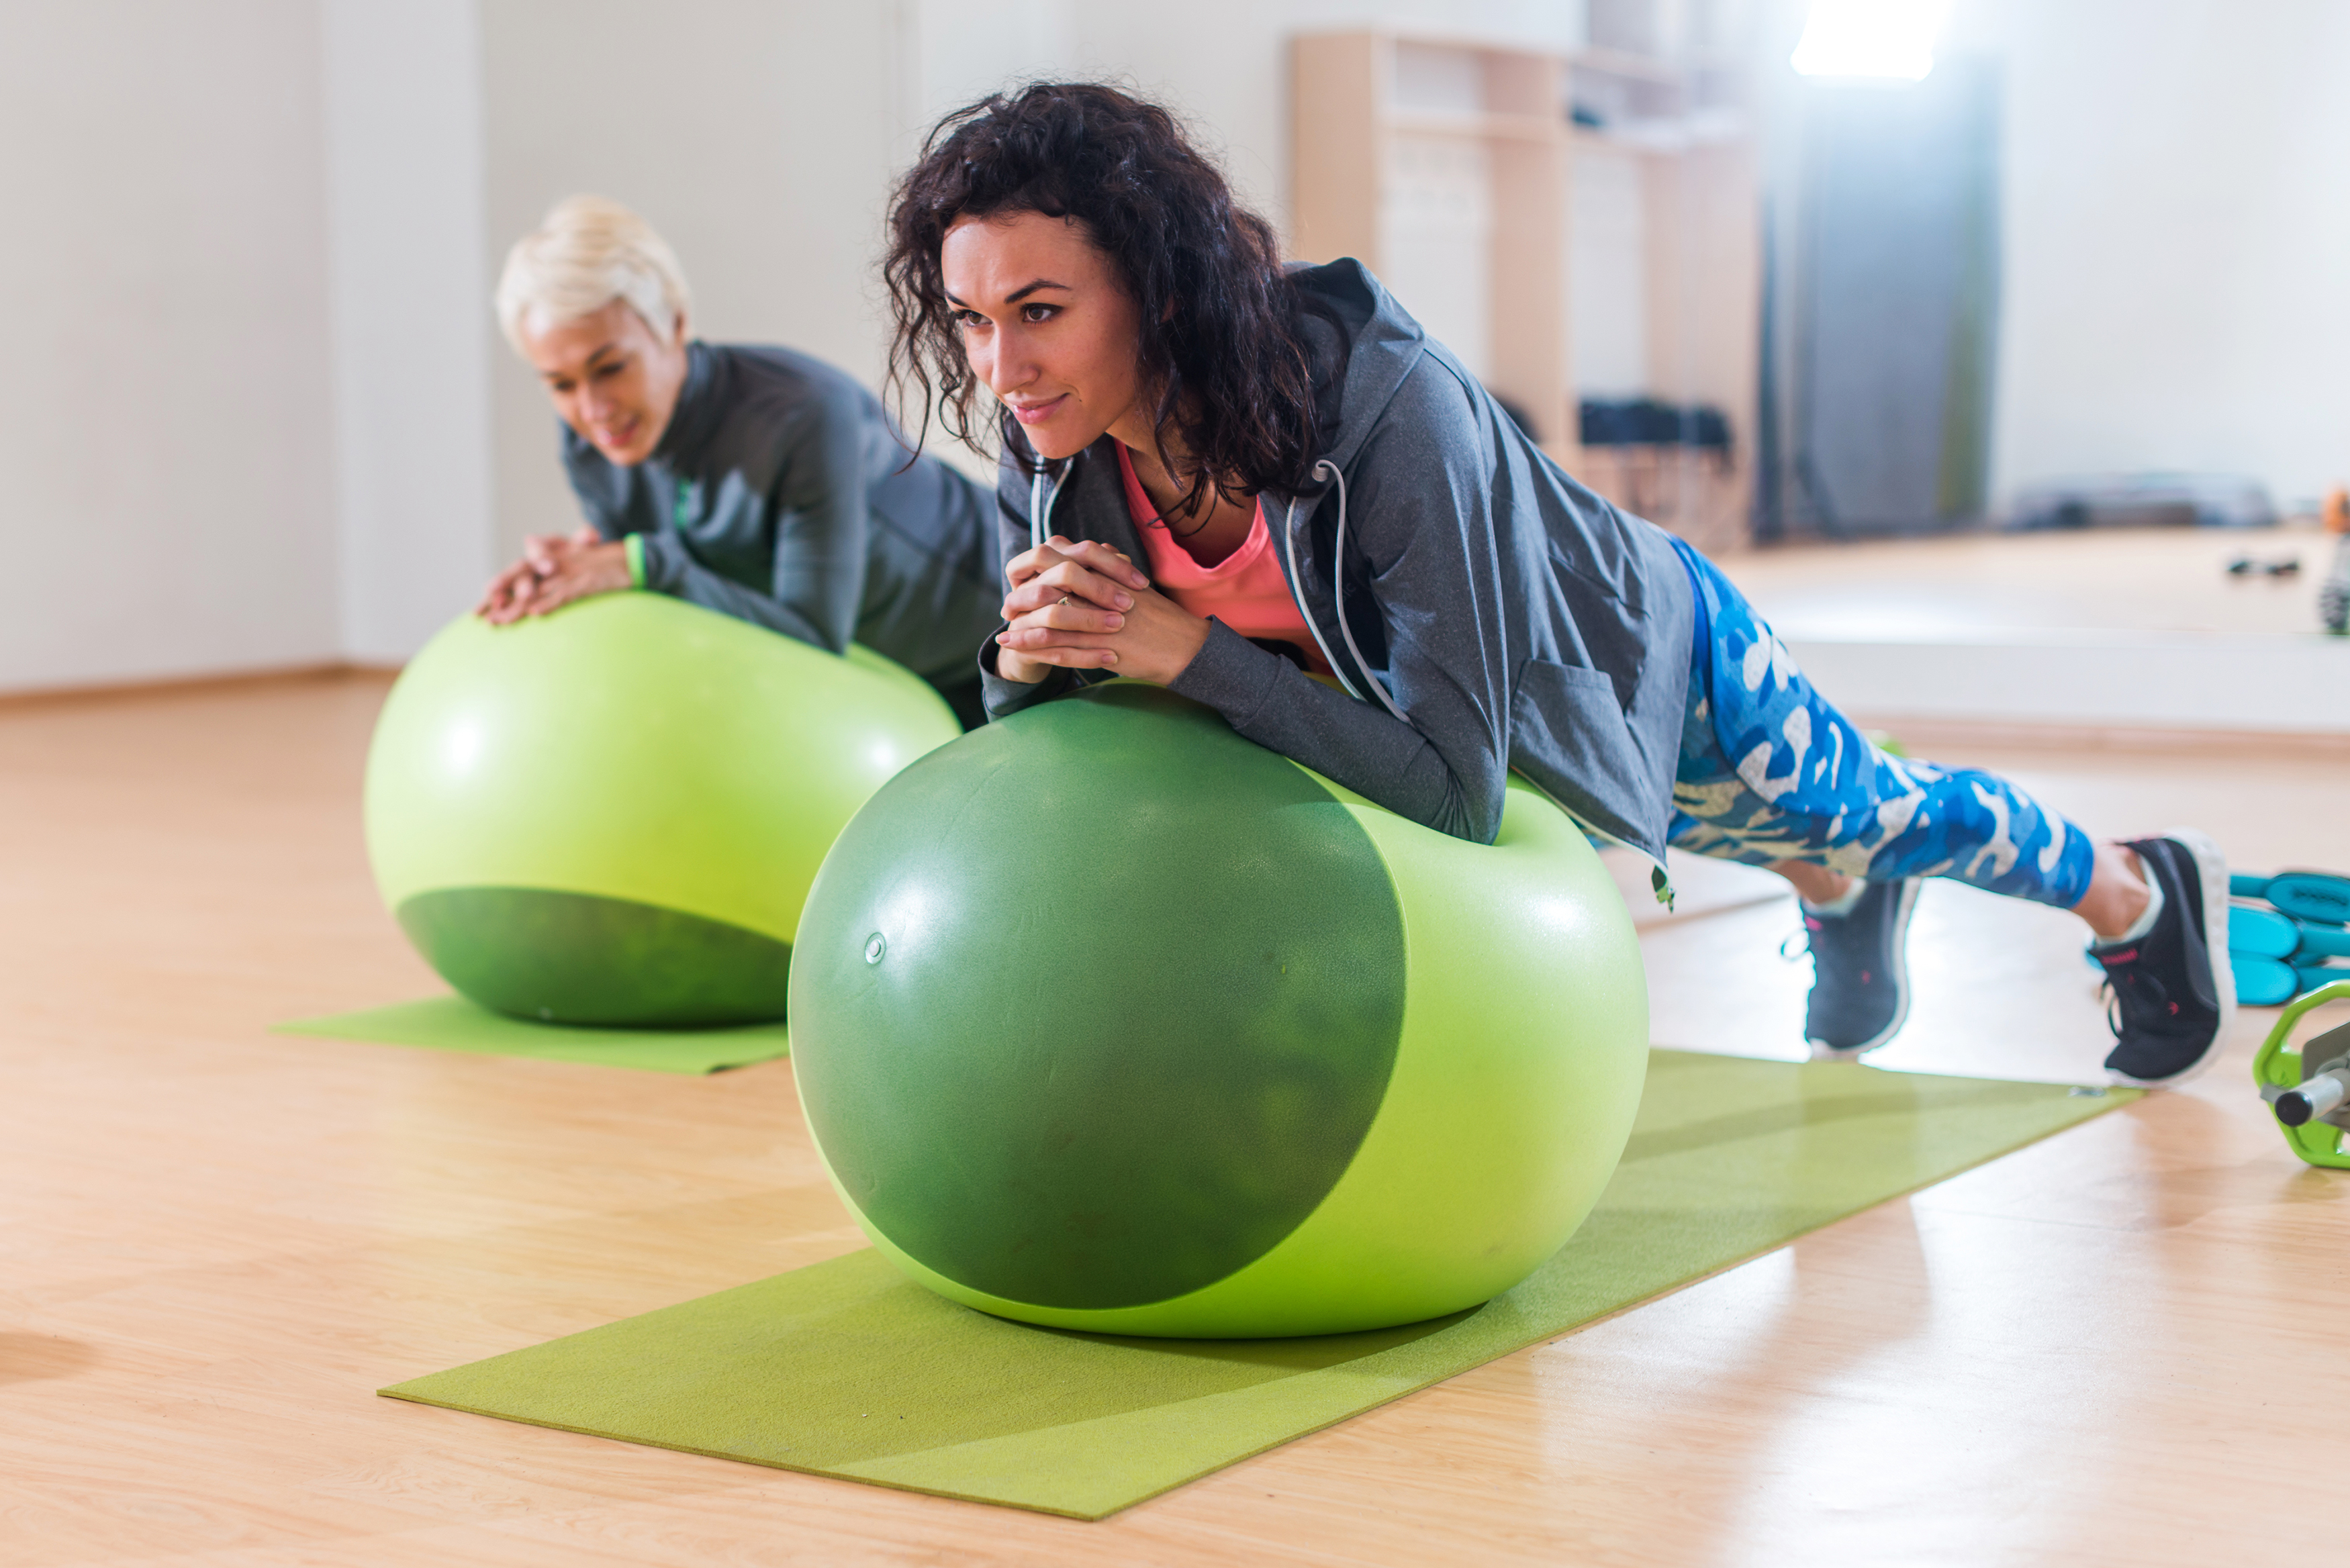 Spice up your workout with a stability ball and weights